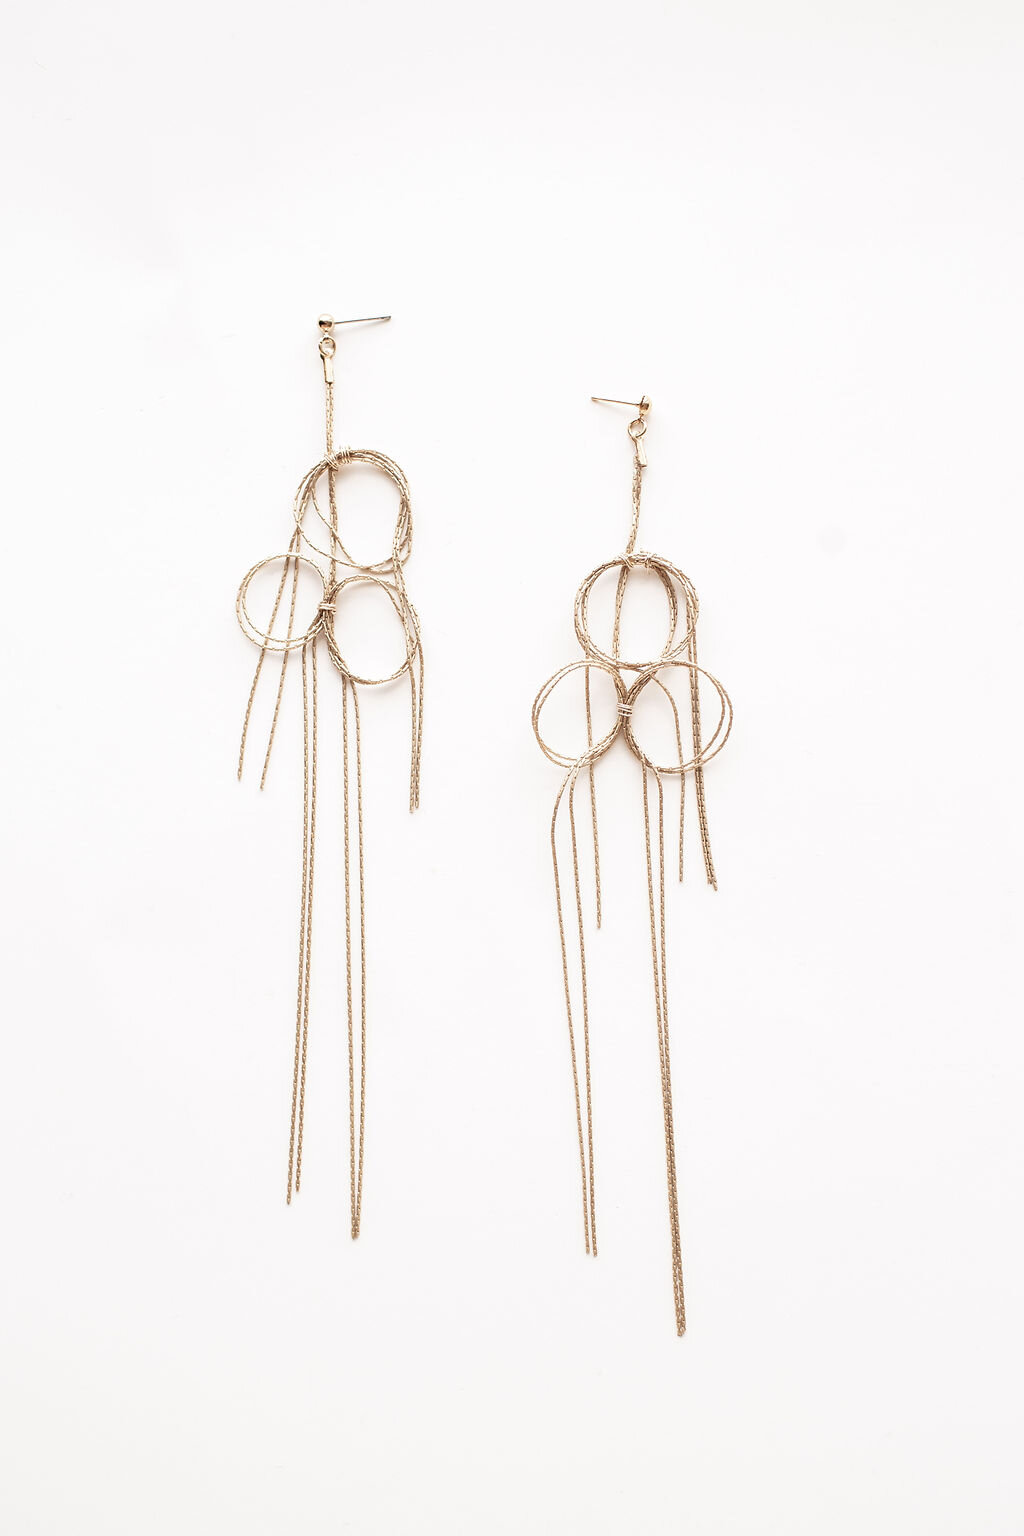 [SELL]A.B.ELLIE[Knot Strand Earrings]